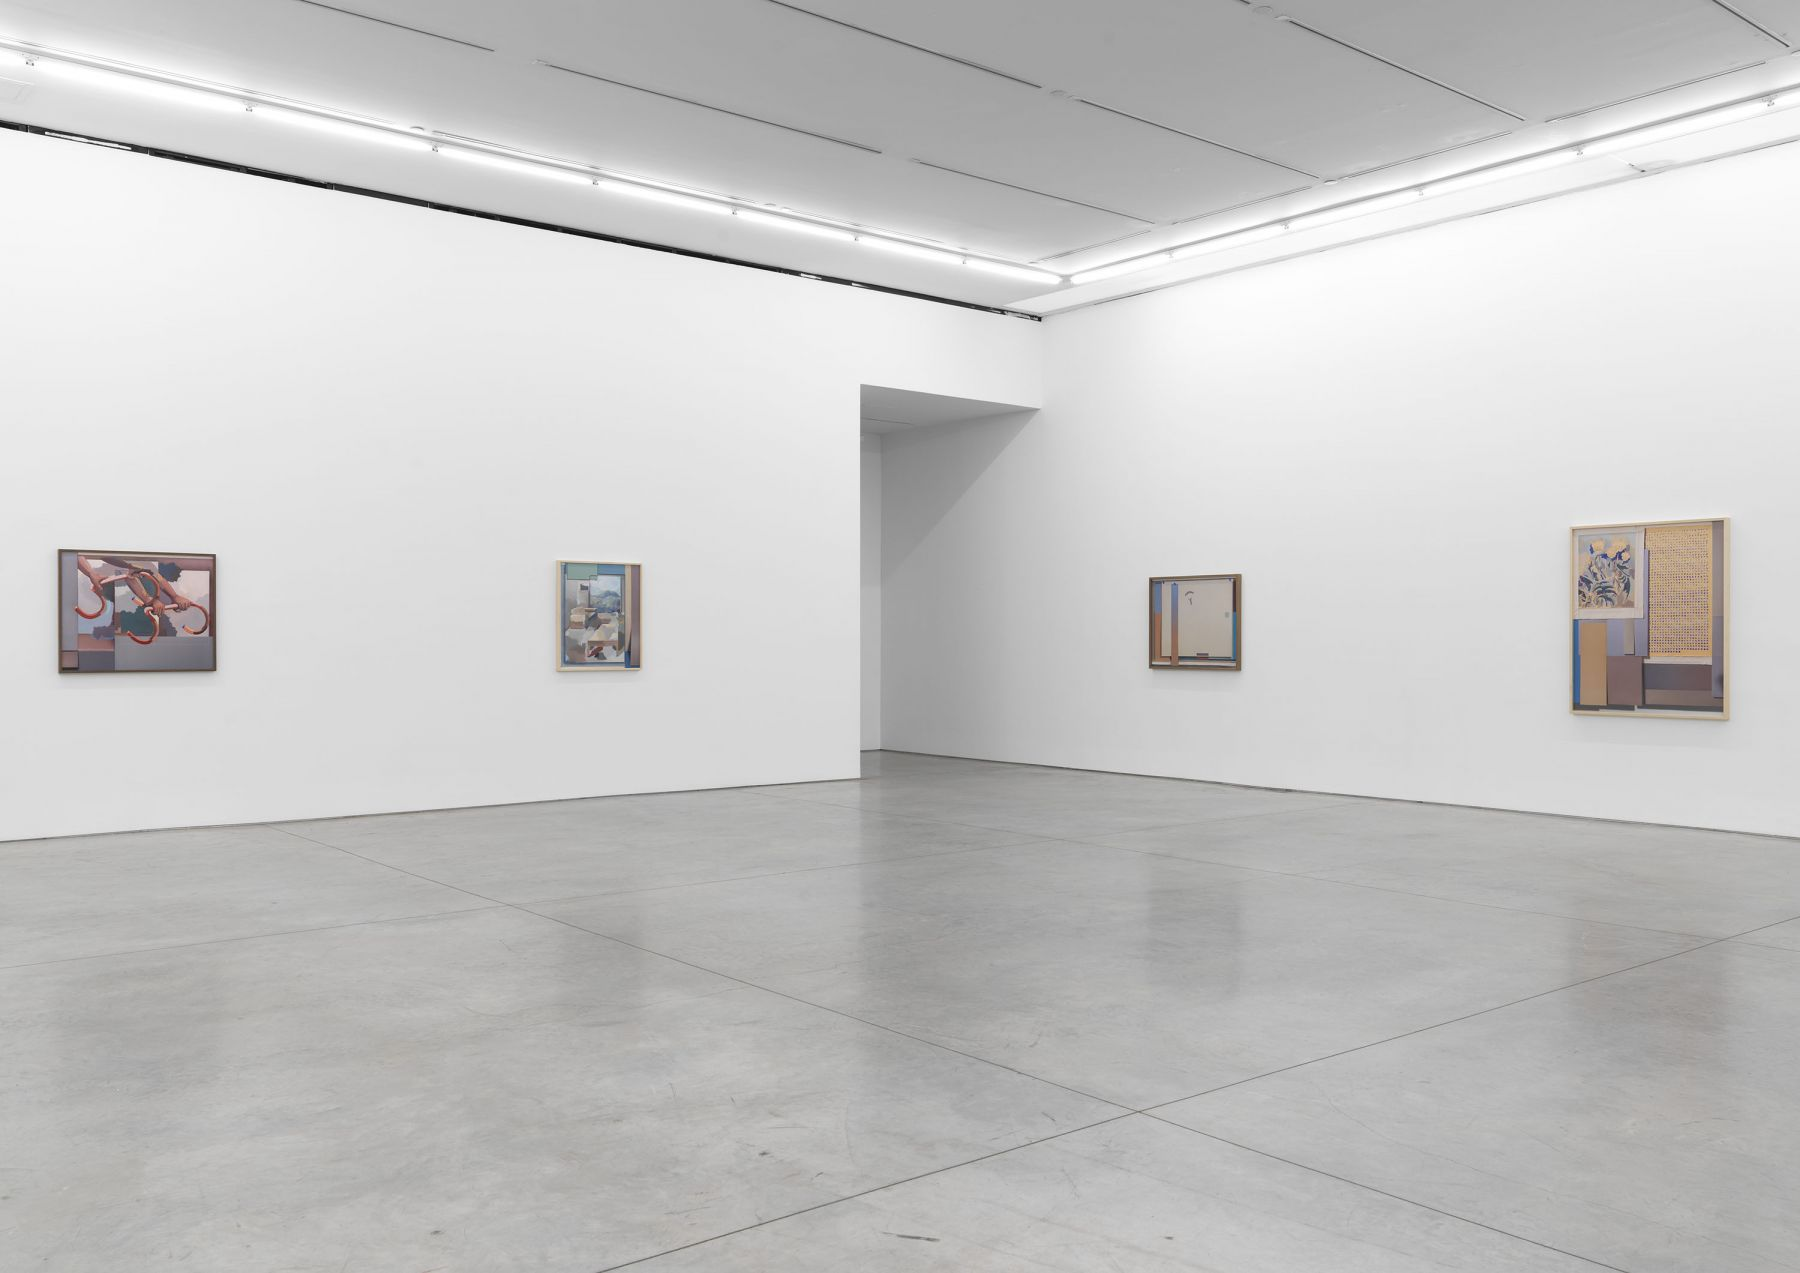 Holding Environment(Installation View)